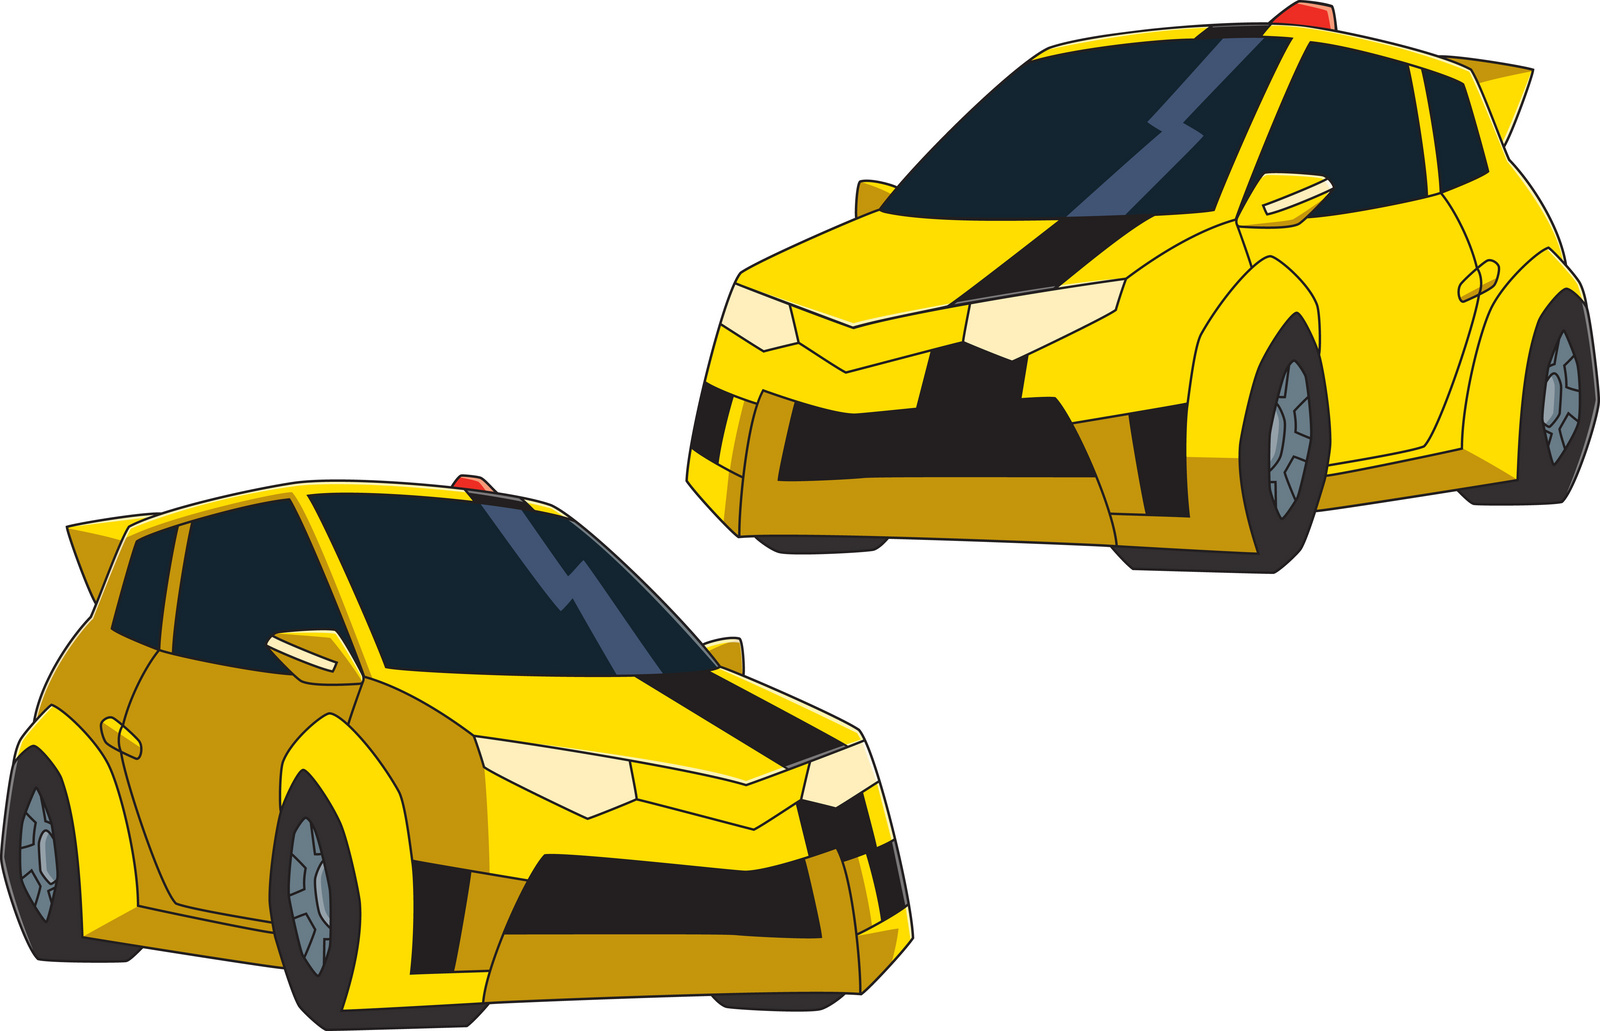 Bumble Bee Car Cartoon